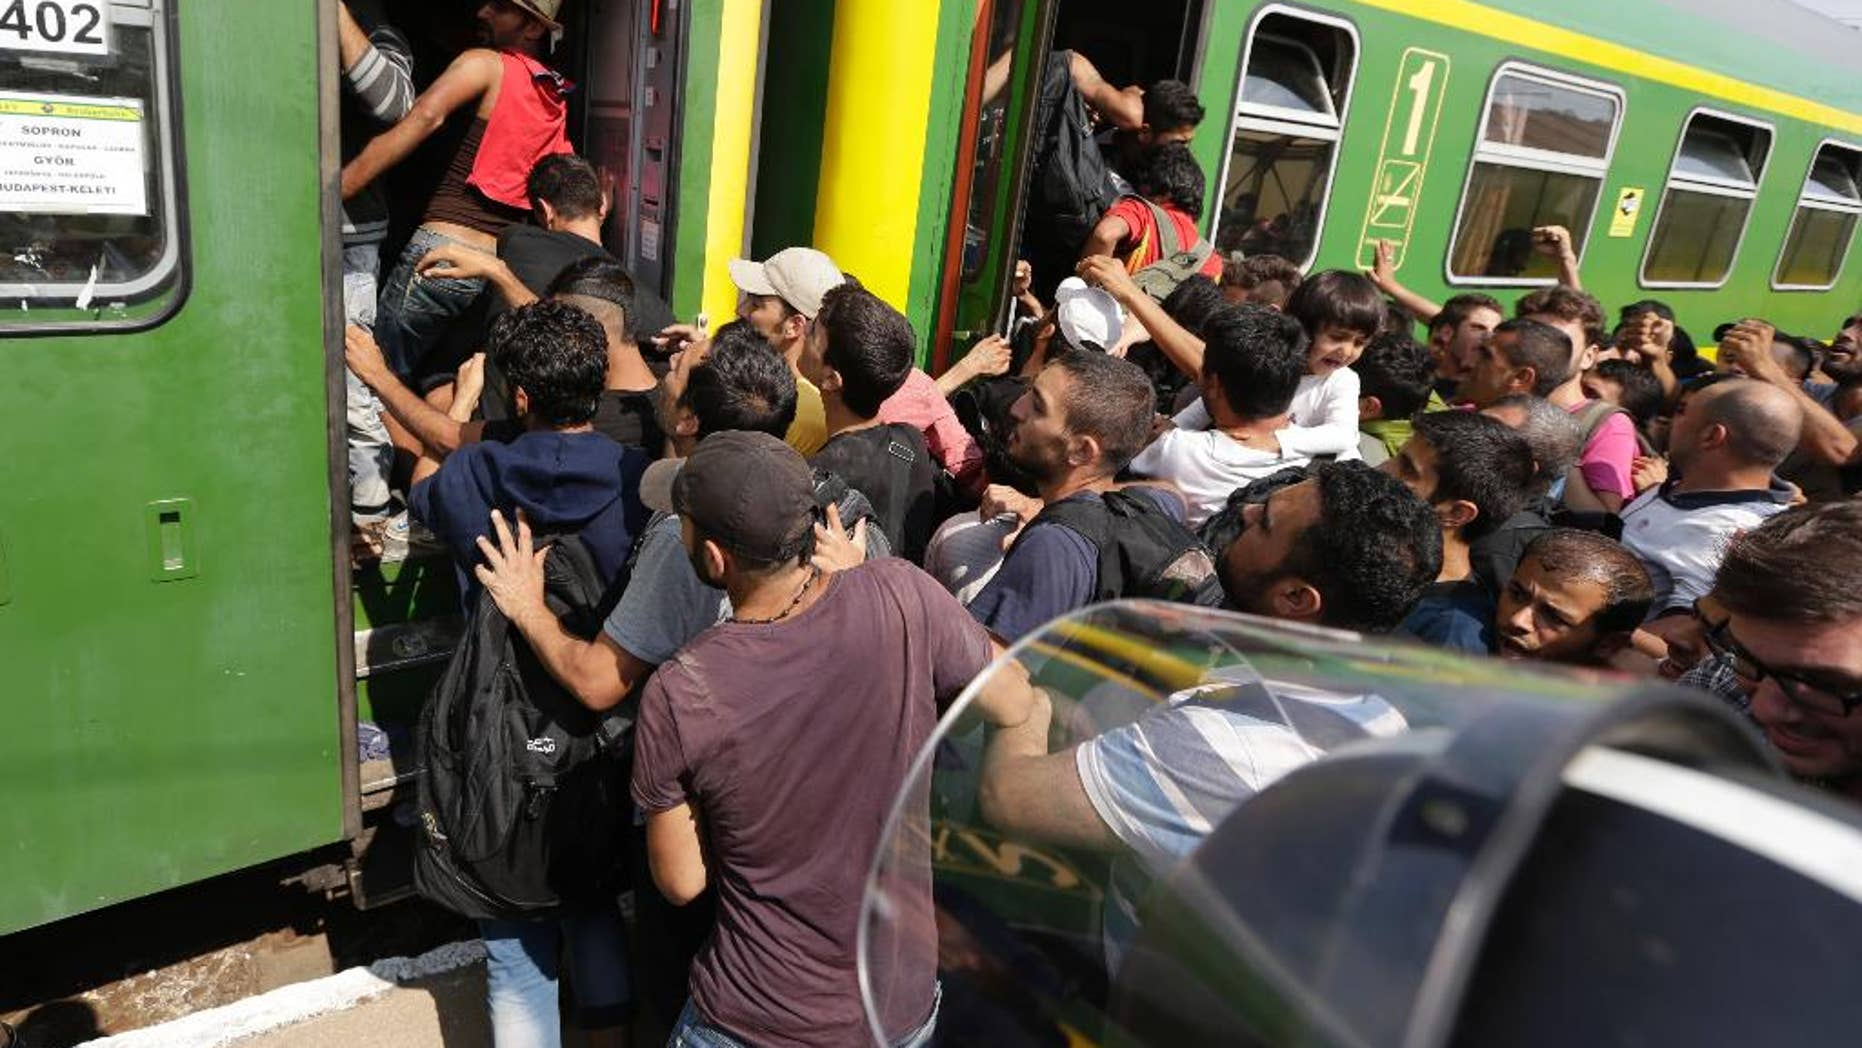 Migrants get back on a train in Bicske, Hungary, Thursday, Sept. 3, 2015. Over 150,000 migrants have reached Hungary this year, most coming through the southern border with Serbia. Many apply for asylum but quickly try to leave for richer EU countries. (AP Photo/Petr David Josek)